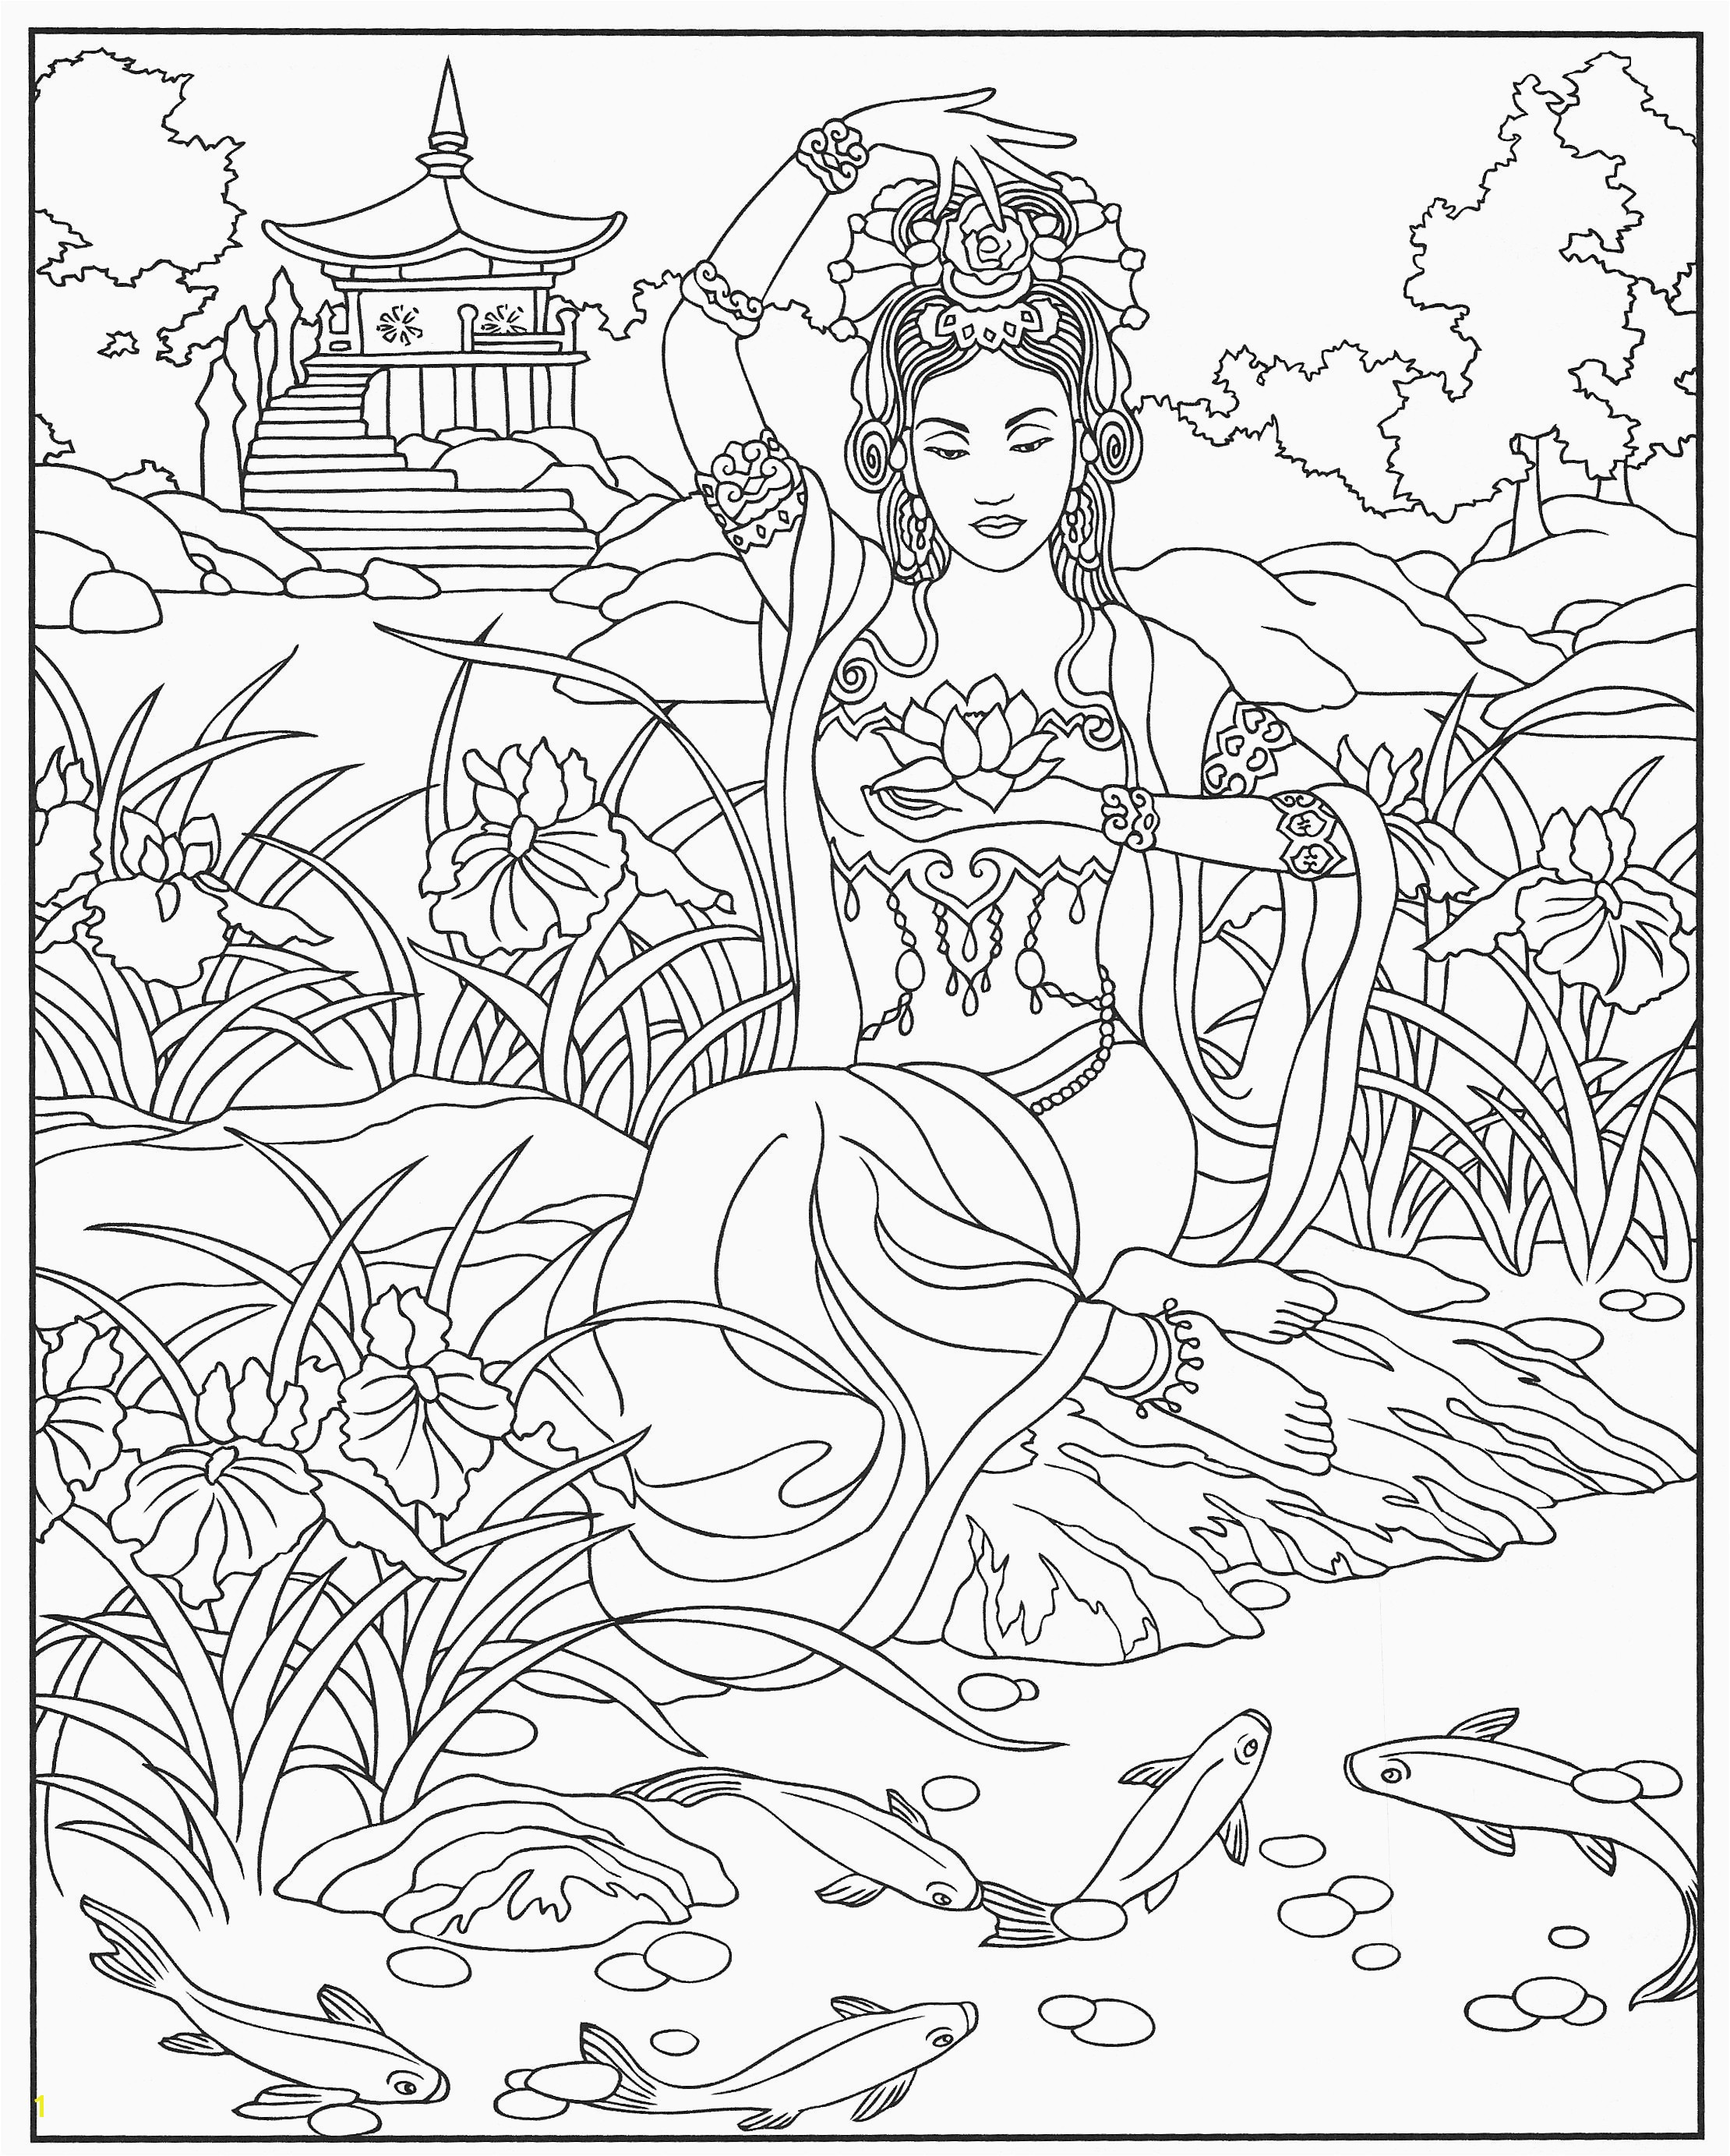 St Francis Of assisi Printable Coloring Page 10 St Francis assisi Coloring Page